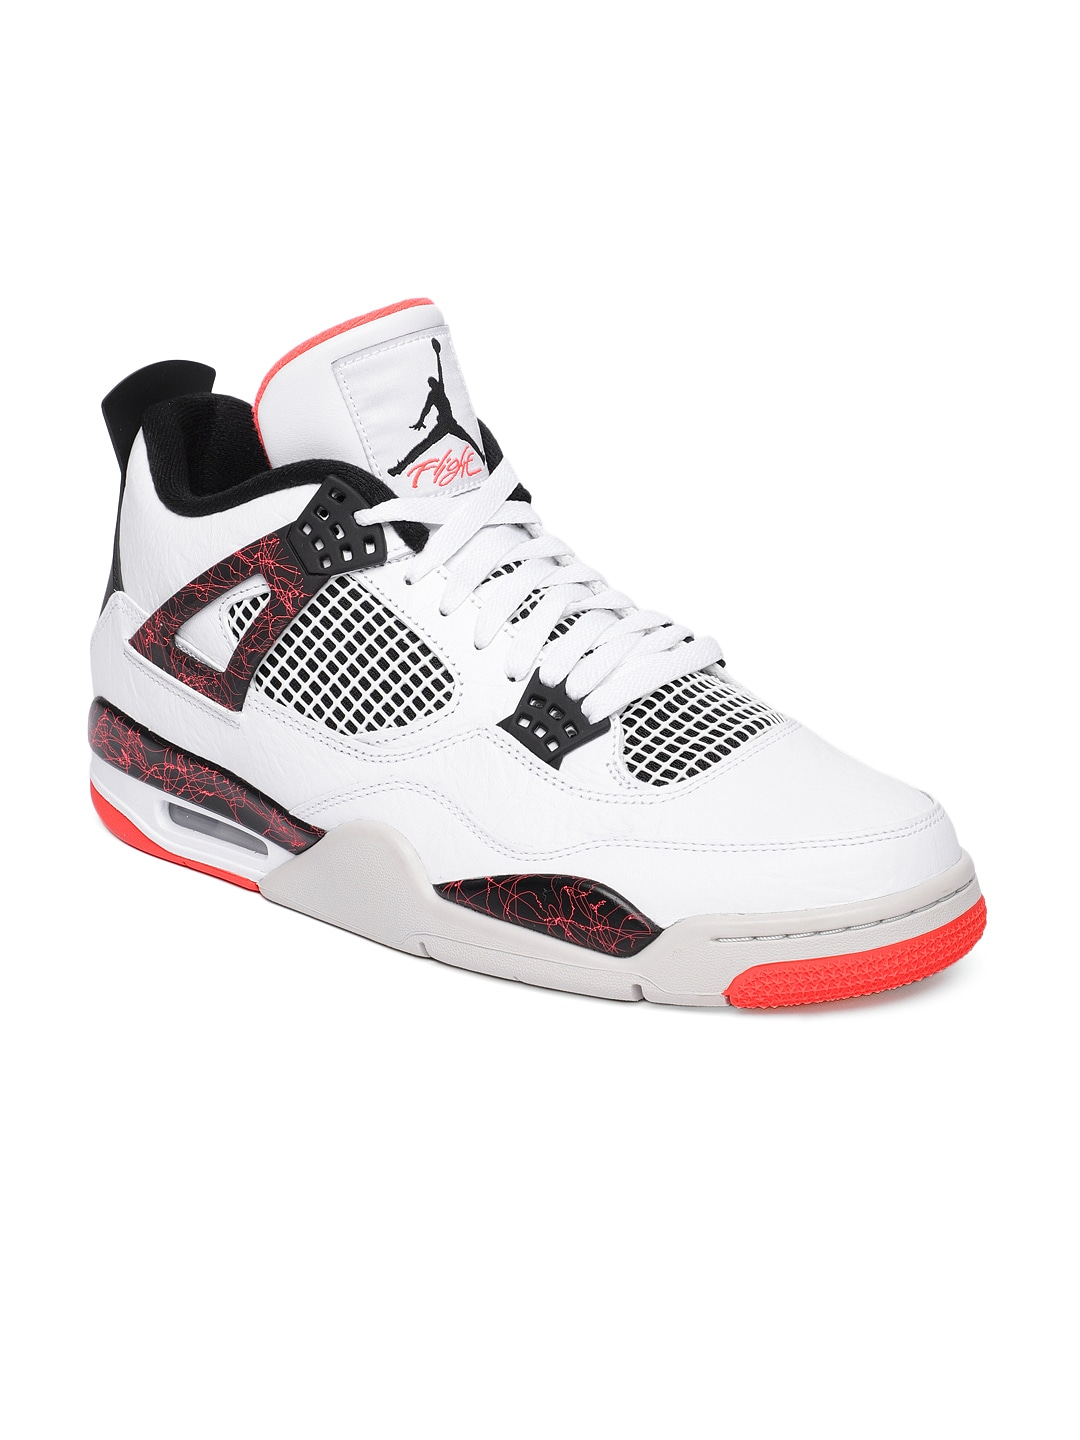 2d67ecd542e3 Jordan Shoes - Buy Jordan Shoes For Men Online in India